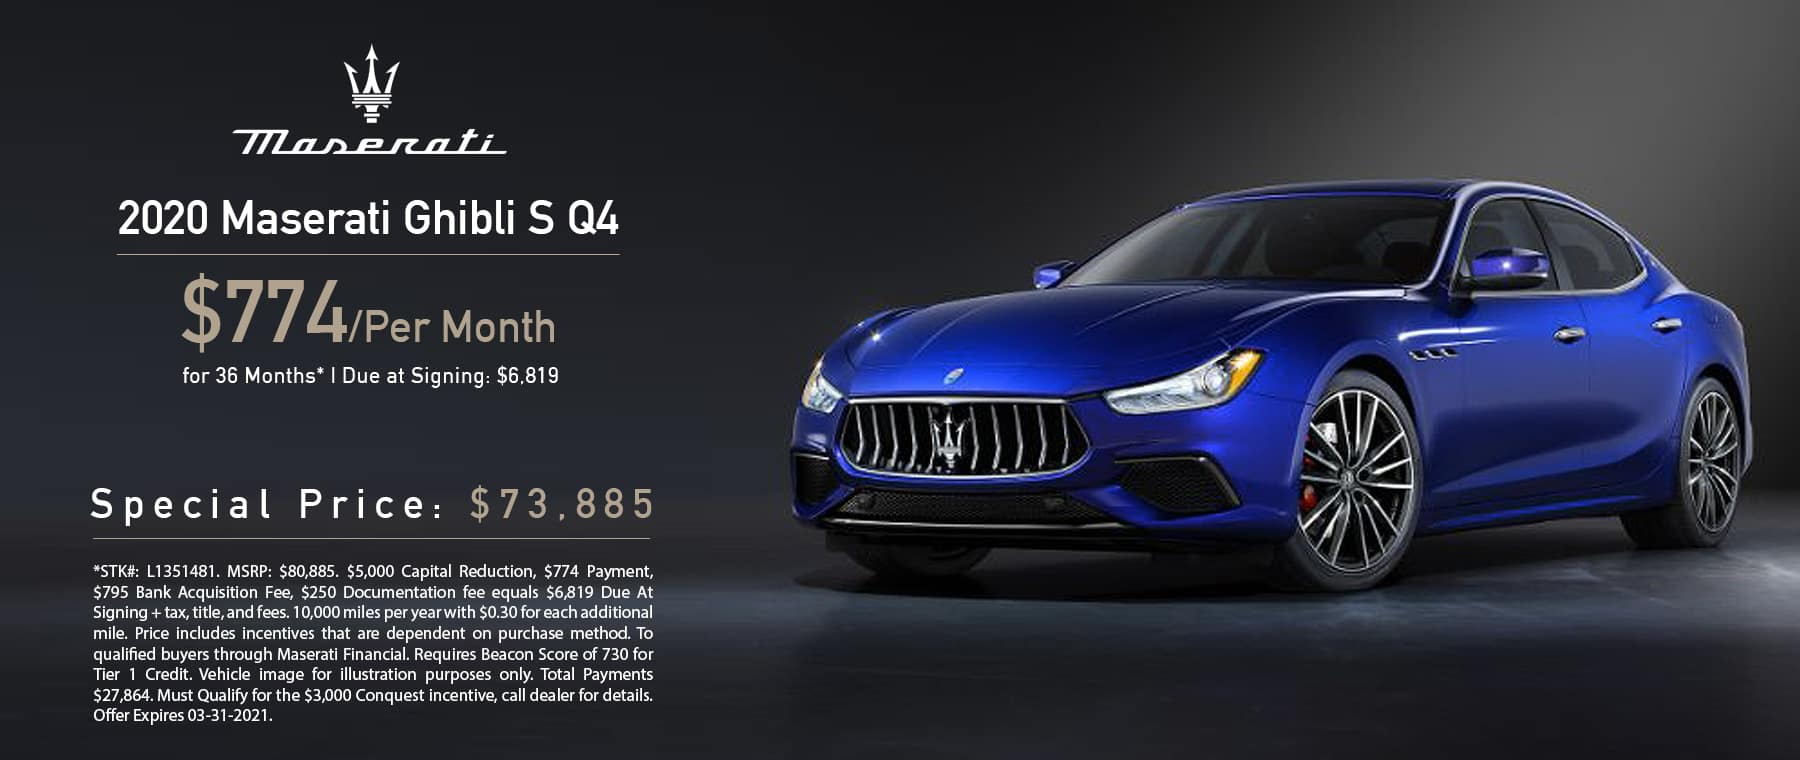 Maserati_2020_Ghibli_Slide_March2021_1